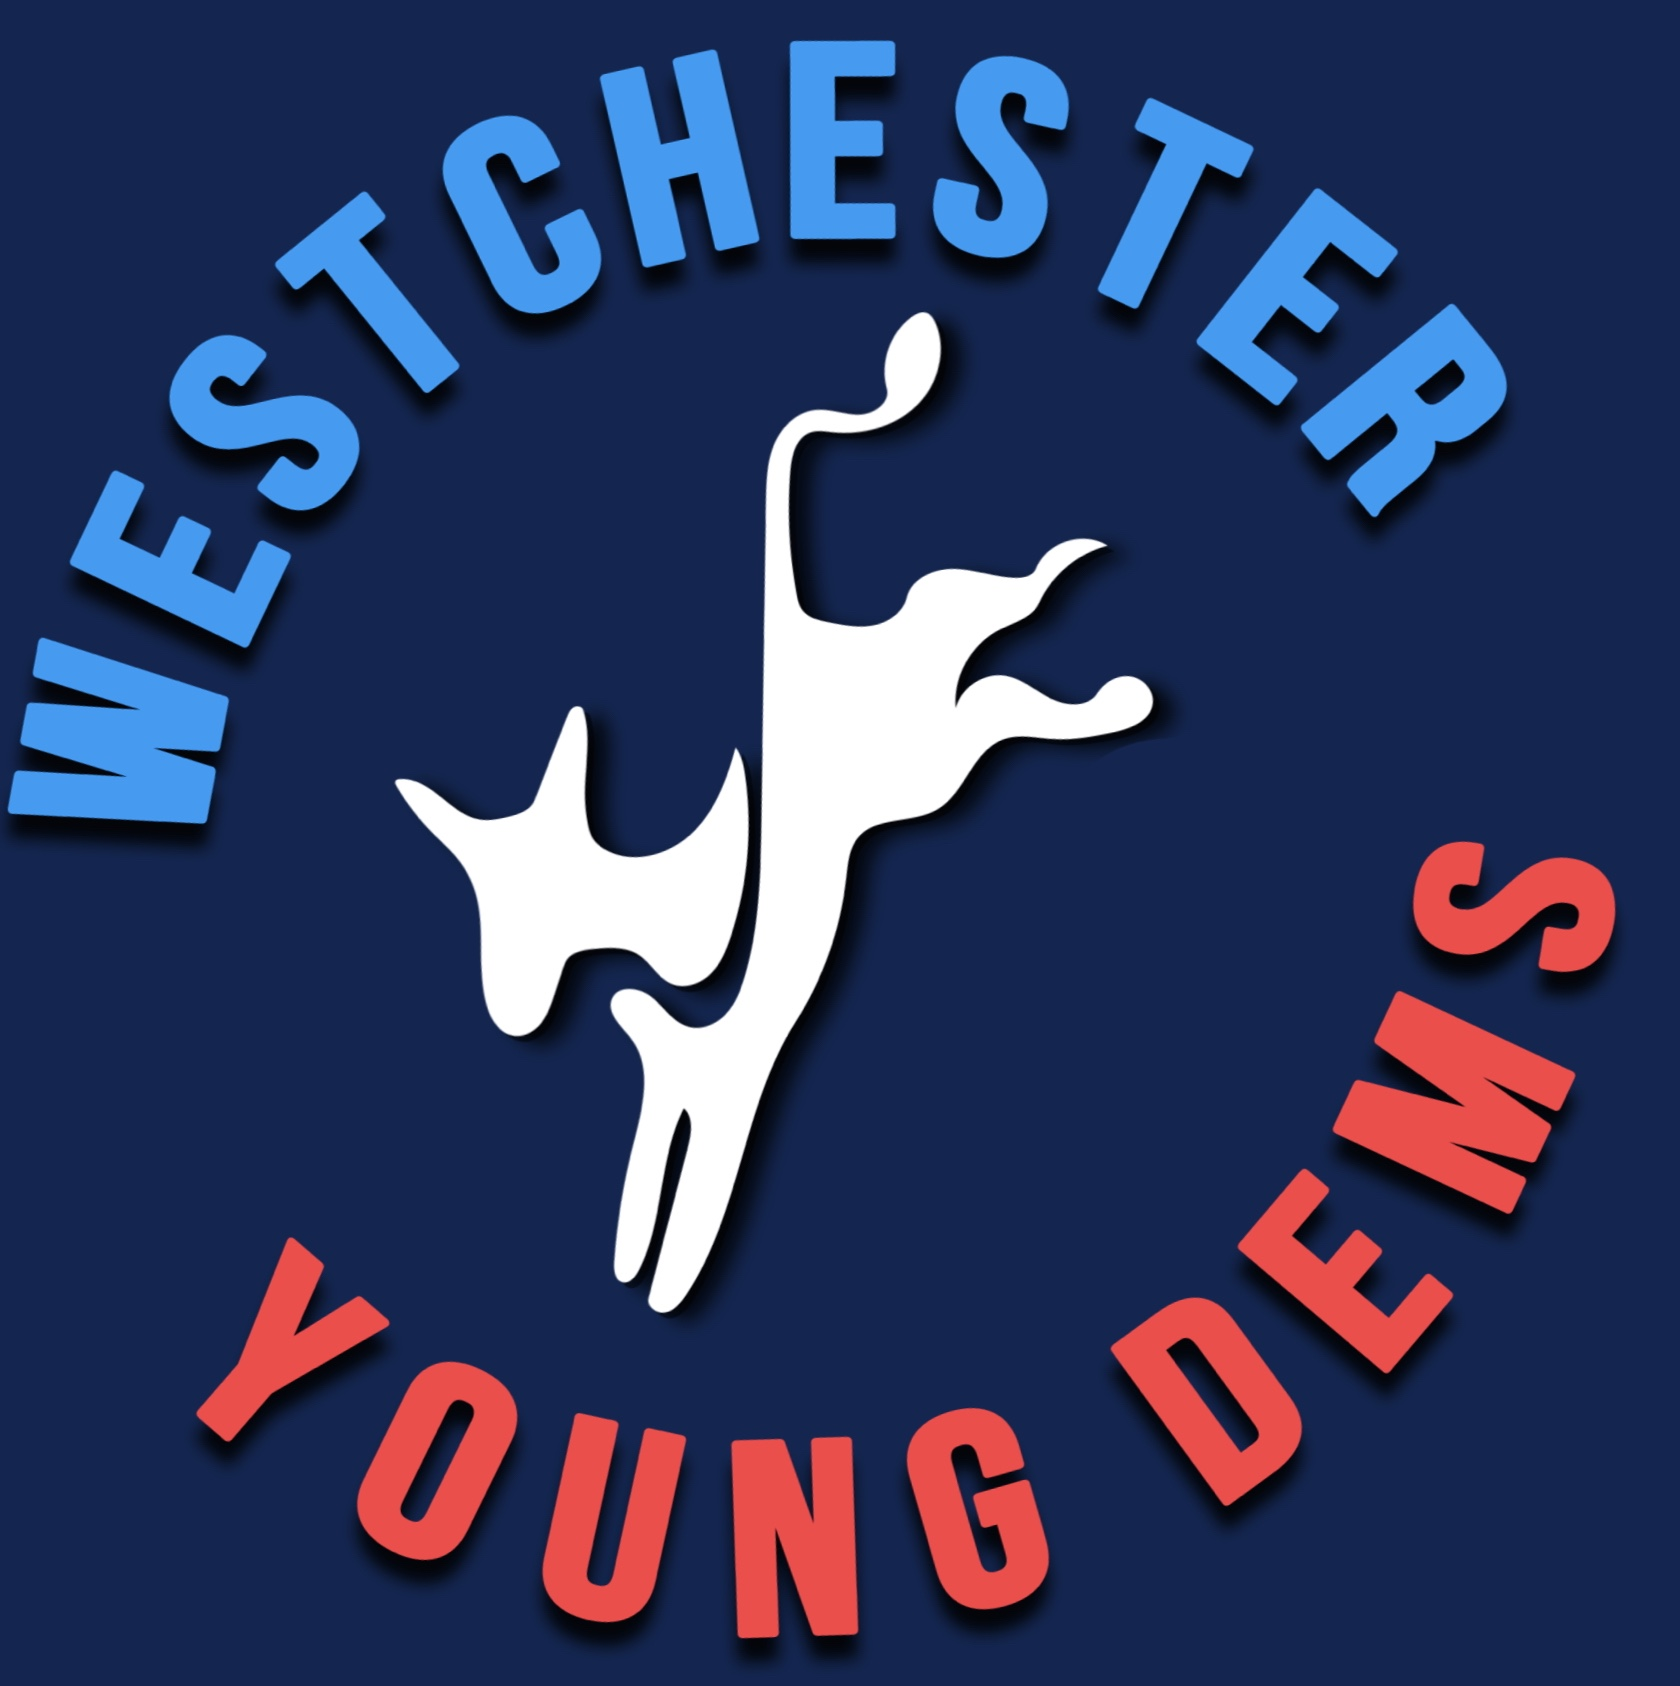 Westchester Young Democrats